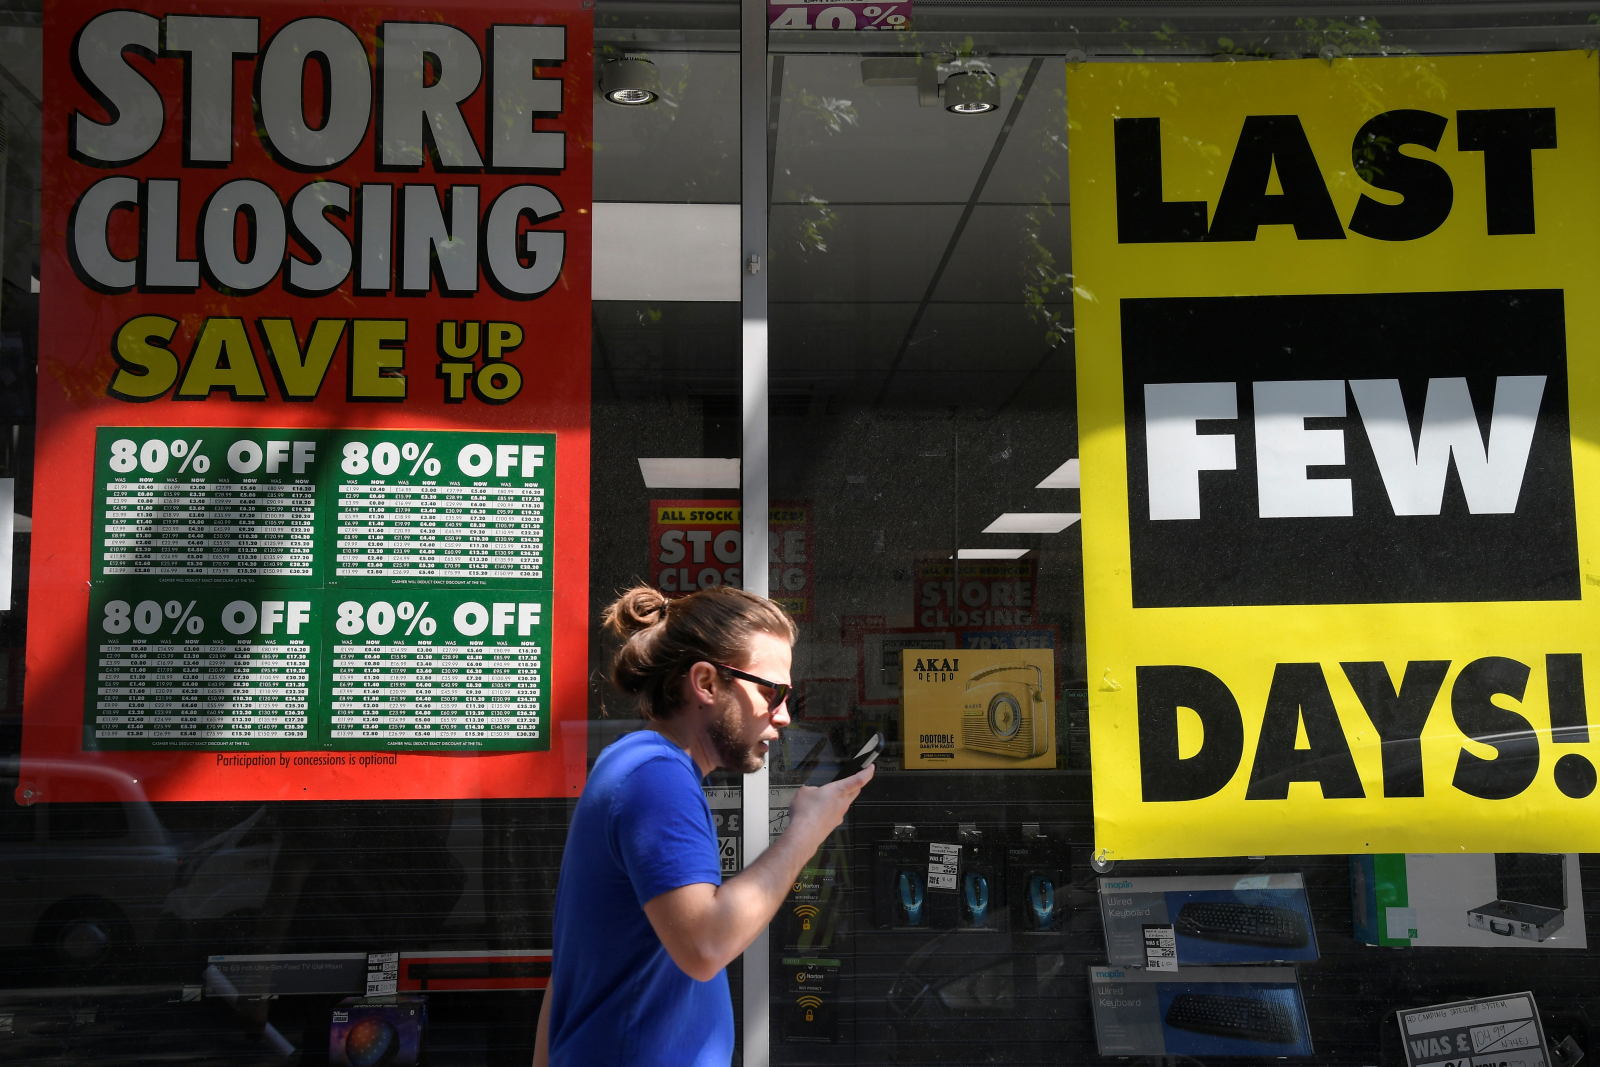 Closing down signs hang in store's window